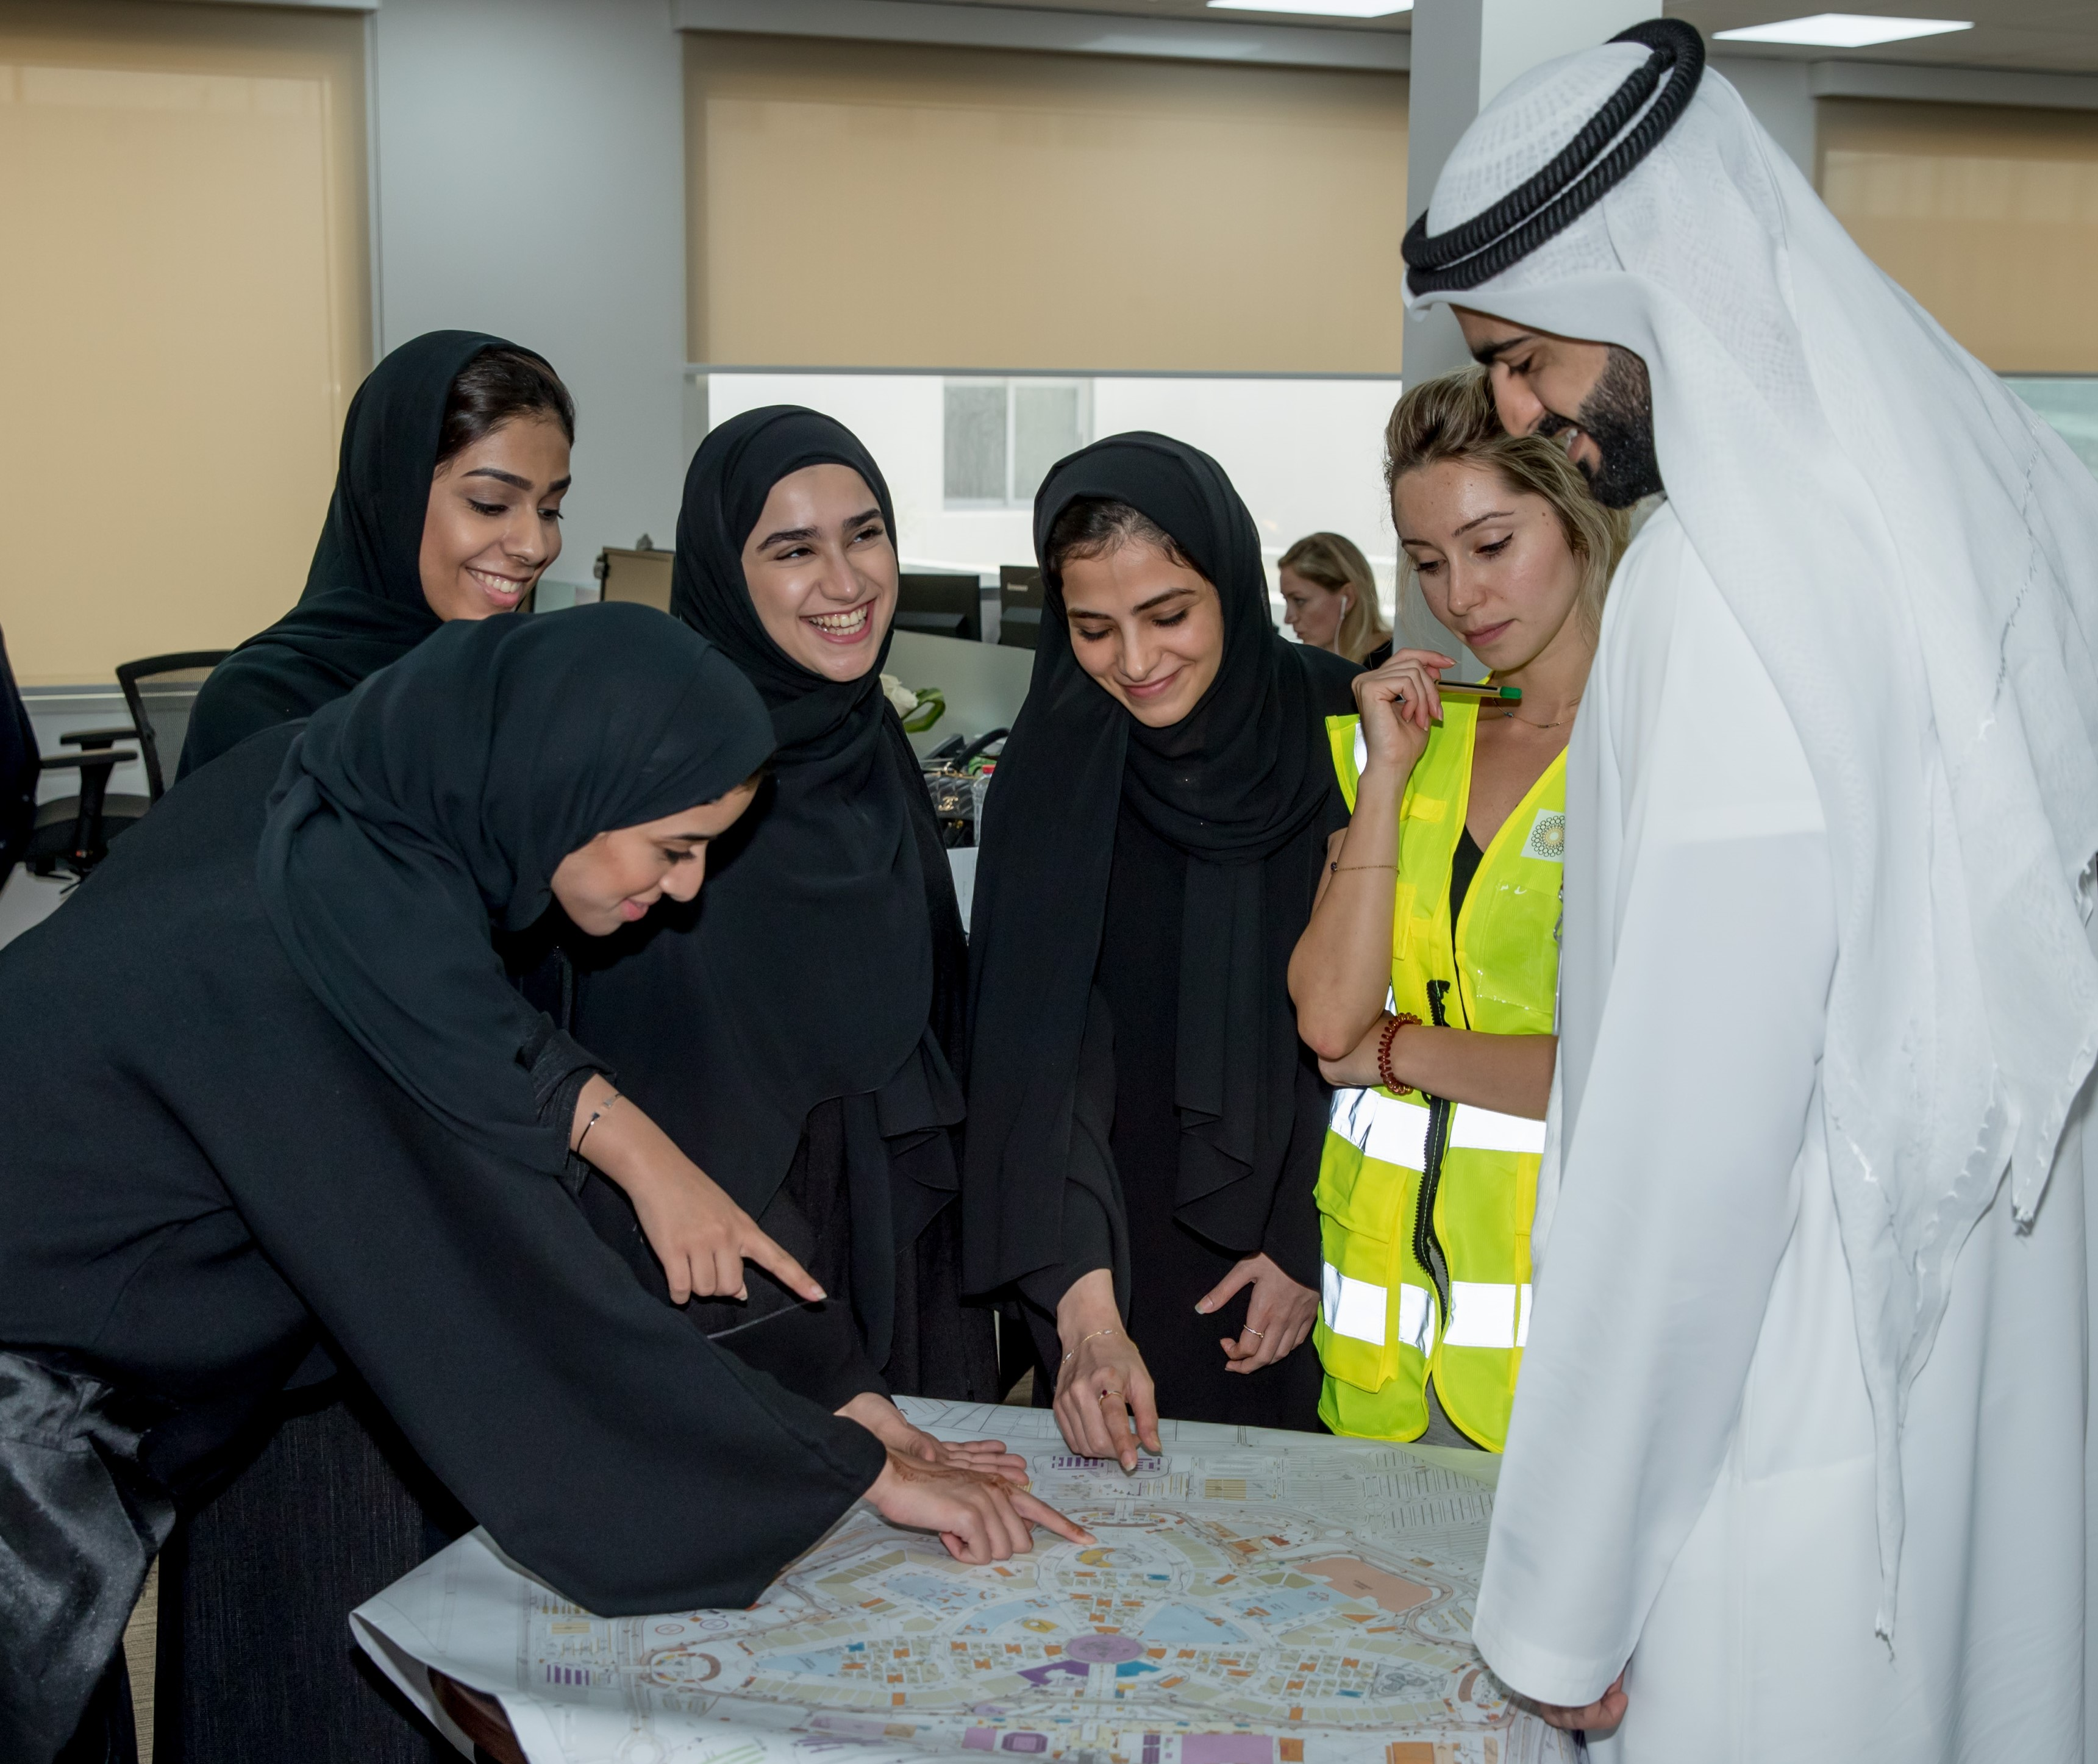 Expo 2020 Dubai Press Office : Internship Opportunity Offers Emirati Youth Chance to Learn From Experienced Expo 2020 Dubai Team